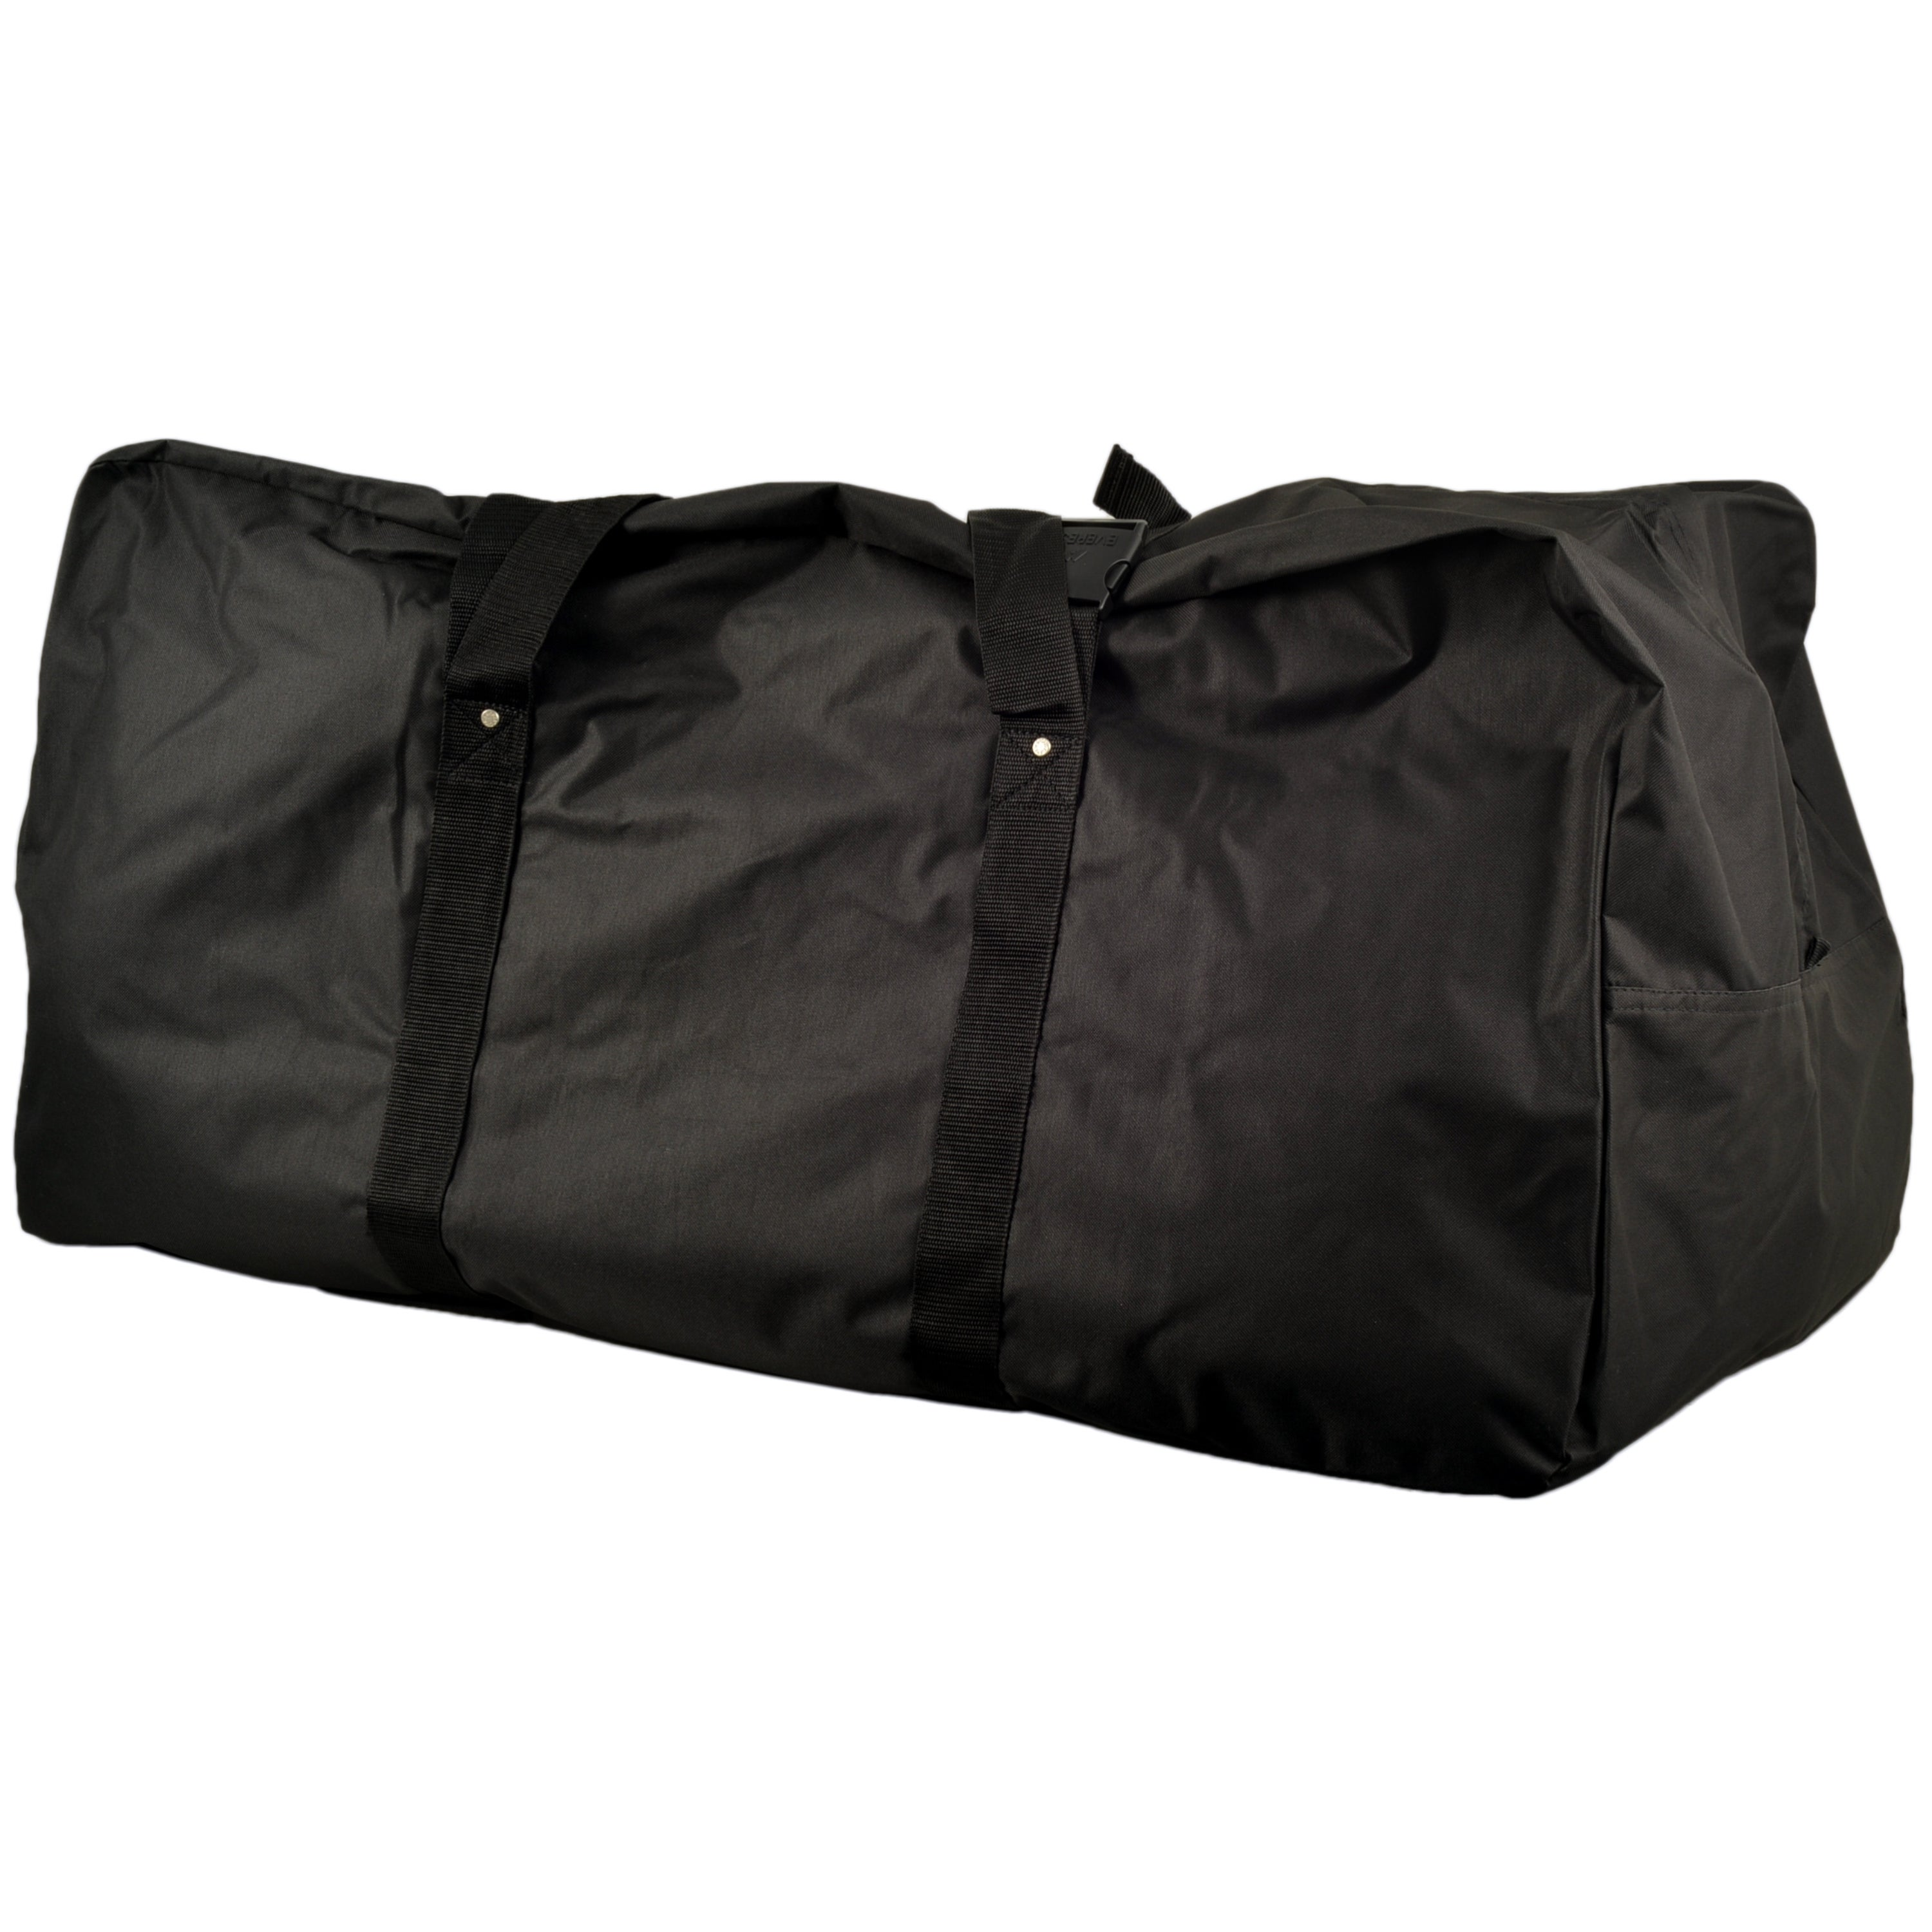 Shop Everest 40-inch 600 Denier Polyester Cargo Duffel Bag - Free ... 4bd738c25